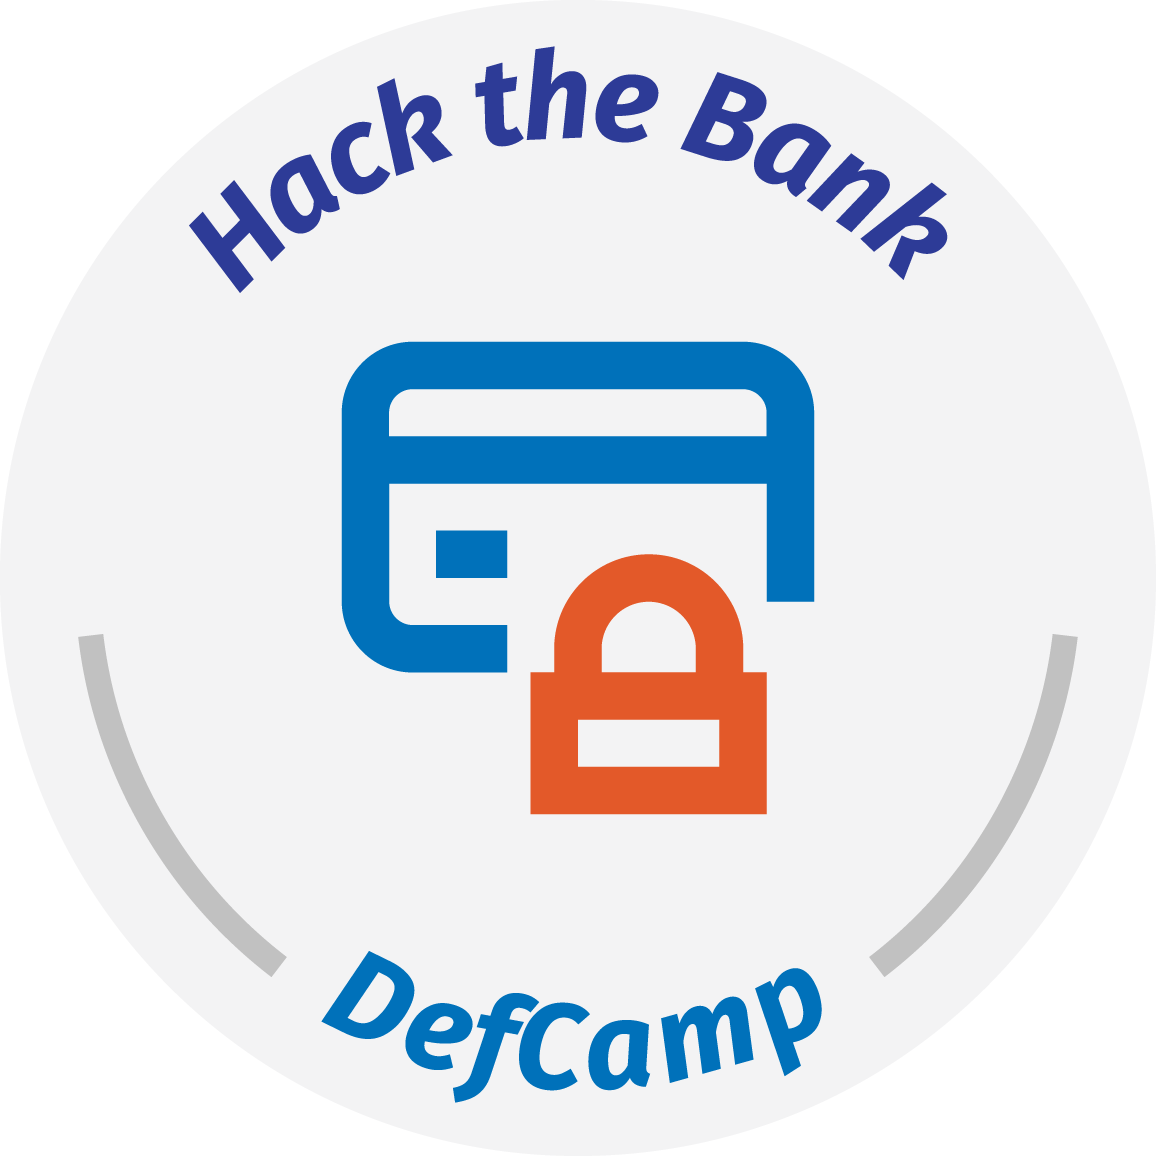 Hack the Bank in the Hacking Village - DefCamp 2019